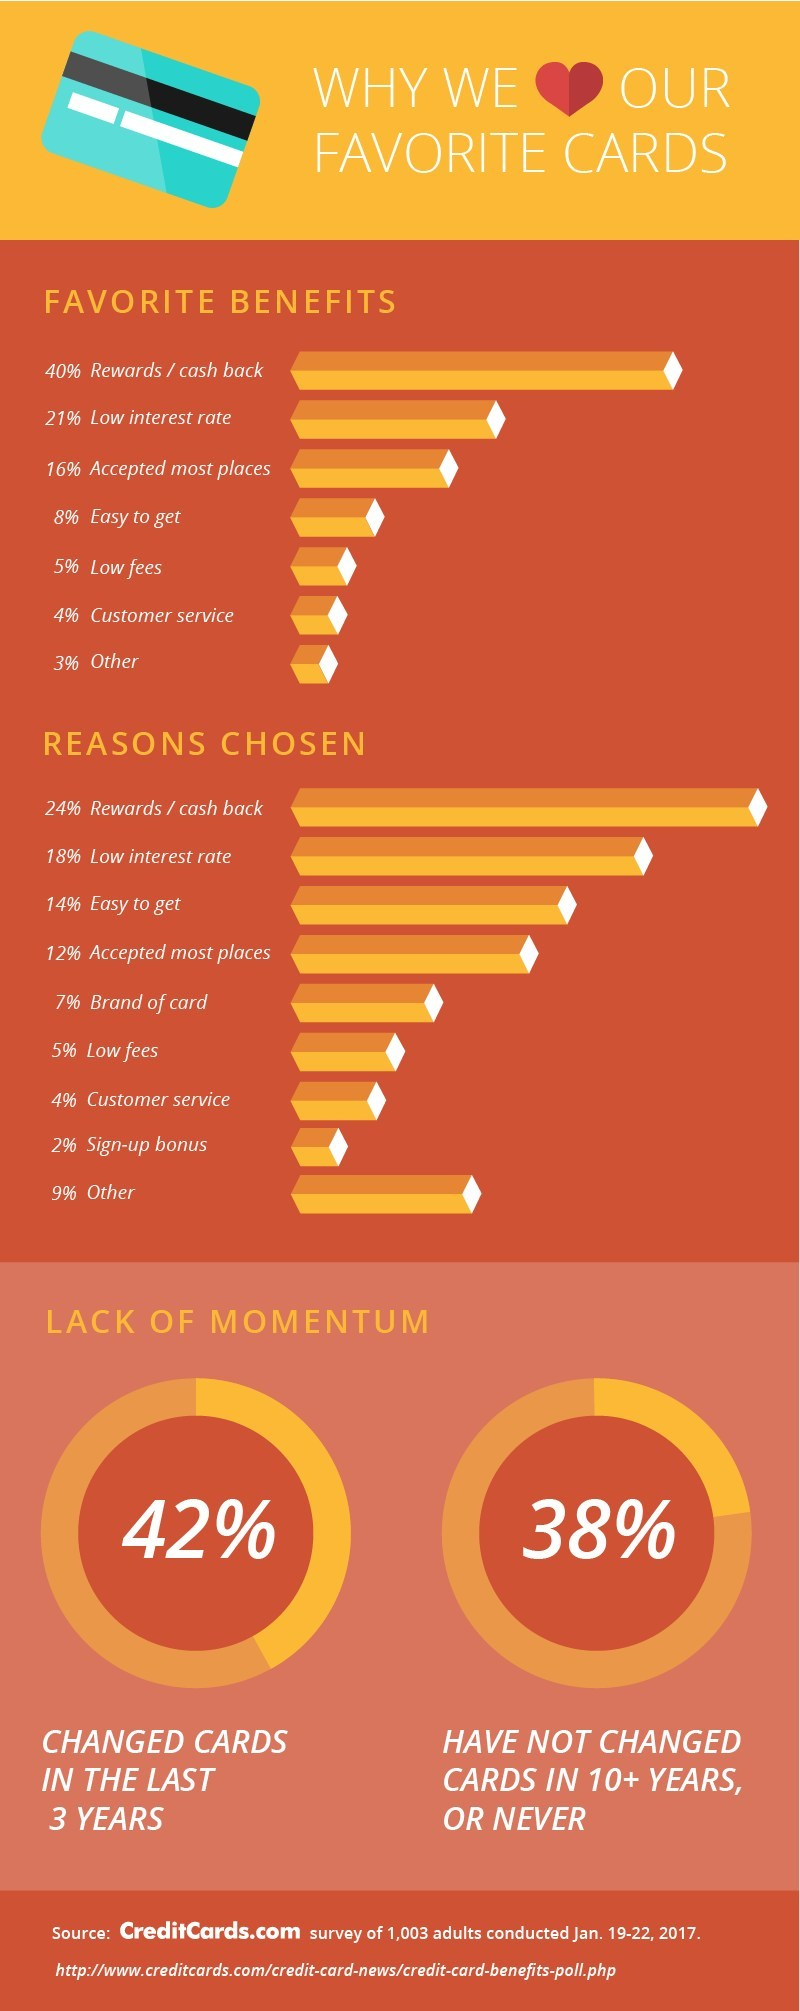 Americans' favorite credit card feature is rewards/cash back, according to CreditCards.com